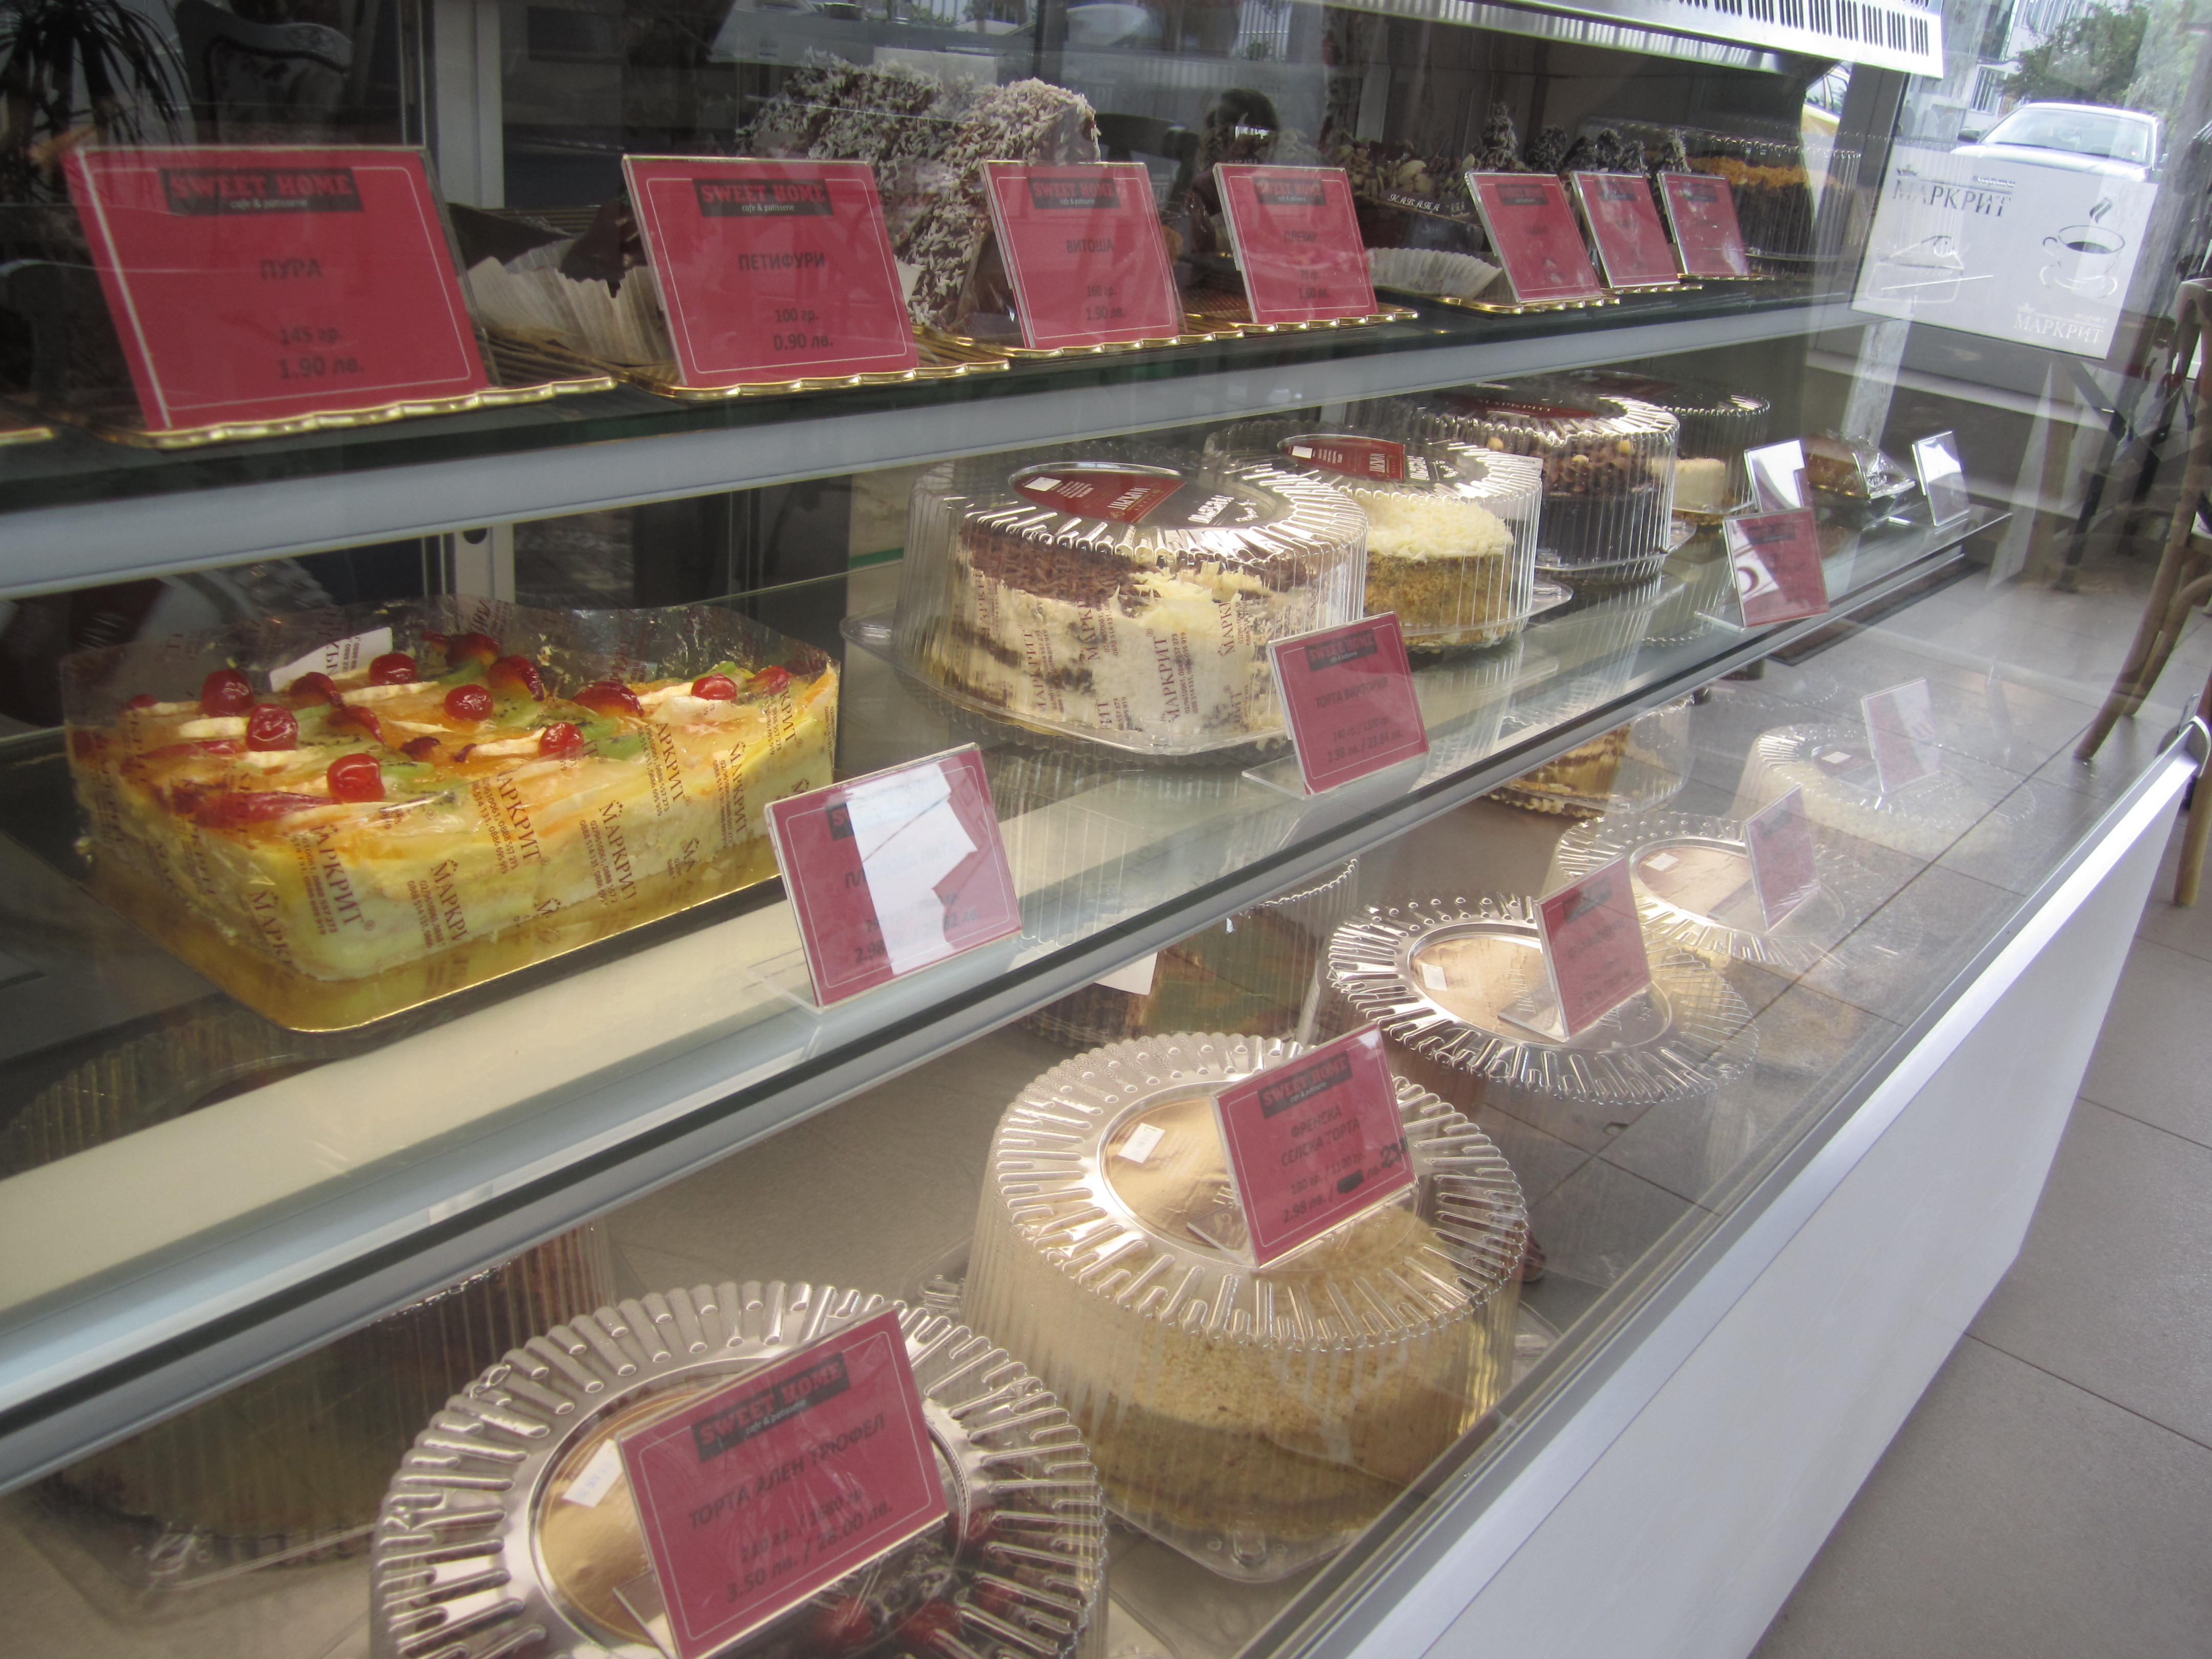 The cakes come from Markrit confectionery and are delivered twice a day.